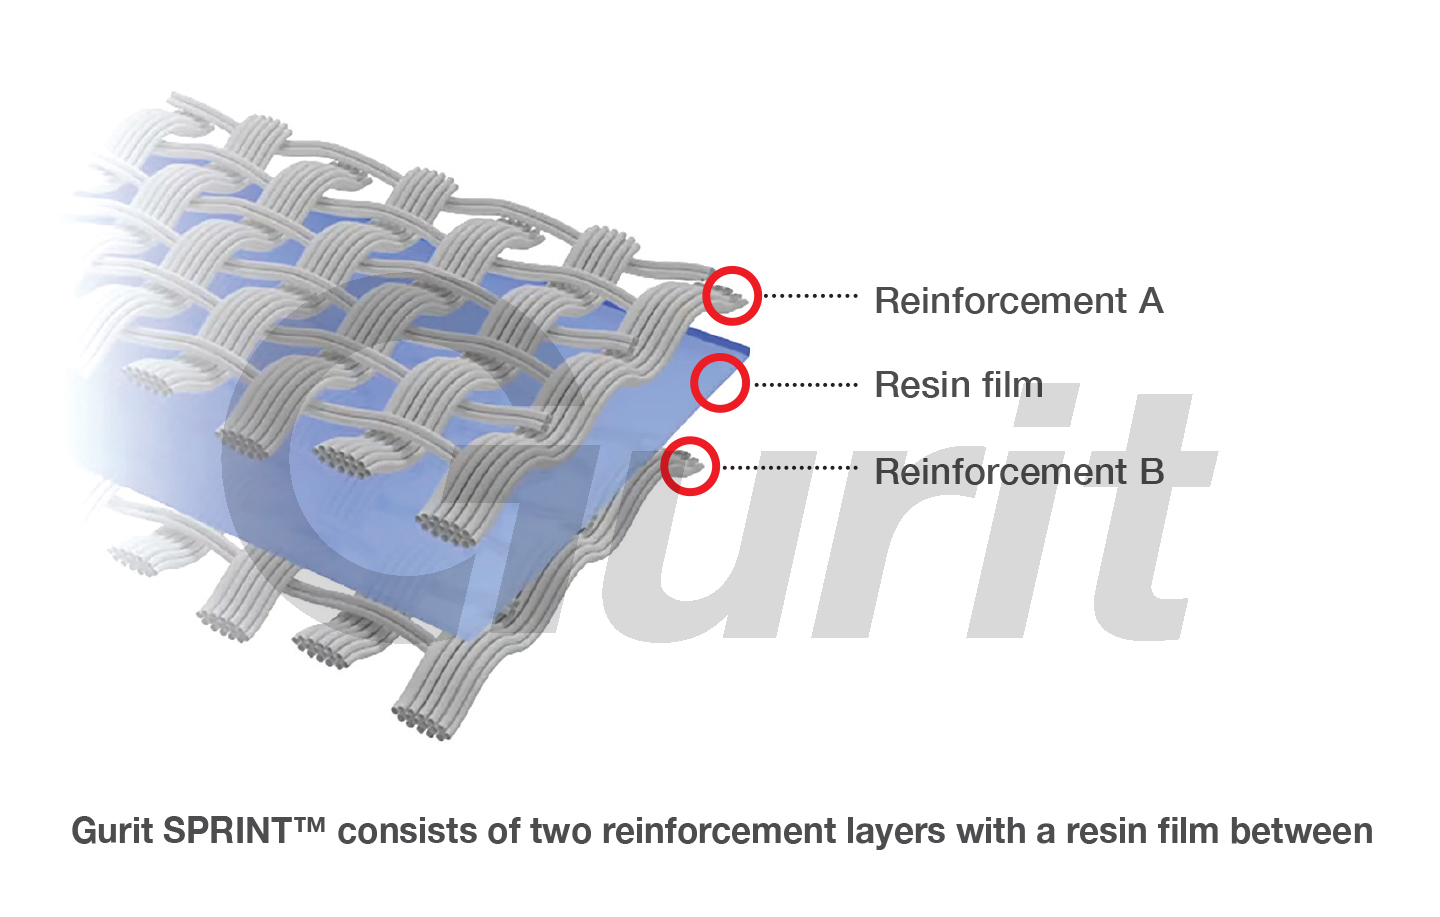 Gurit SPRINT™ consists of one or two reinforcement layers with a resin film between